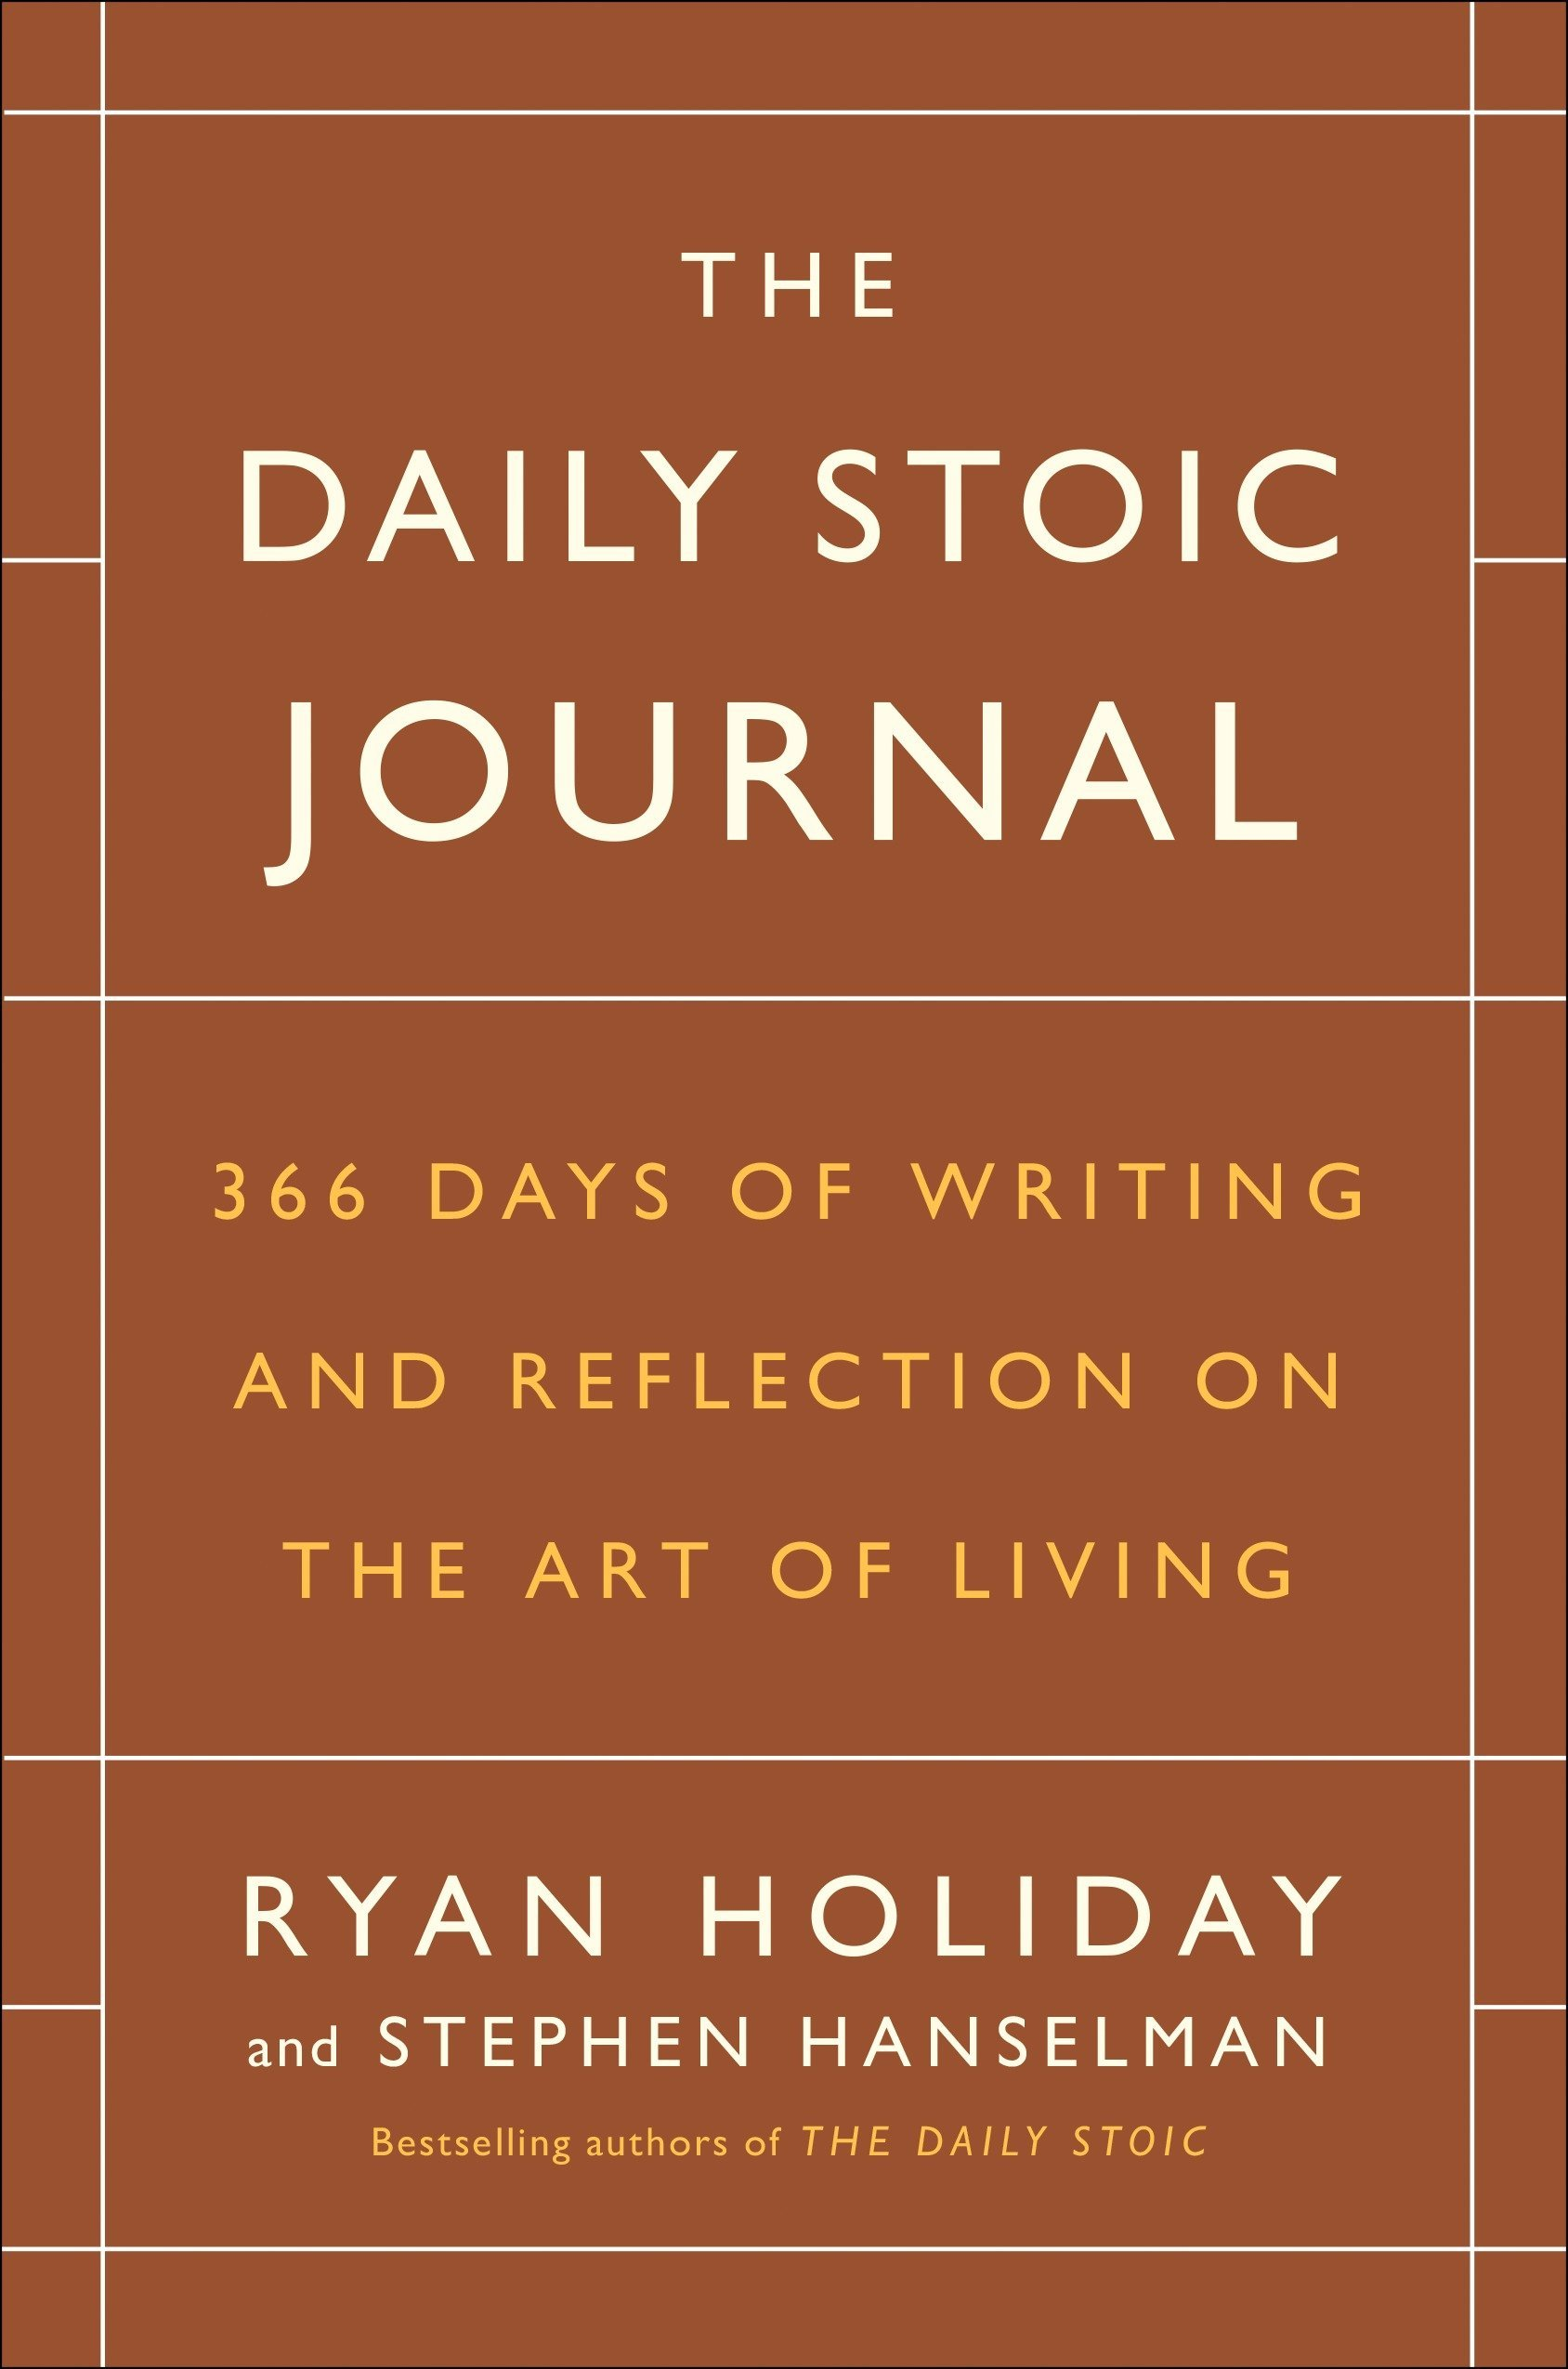 The Daily Stoic Journal: 366 Days of Writing and Reflection on the Art of Living by Portfolio